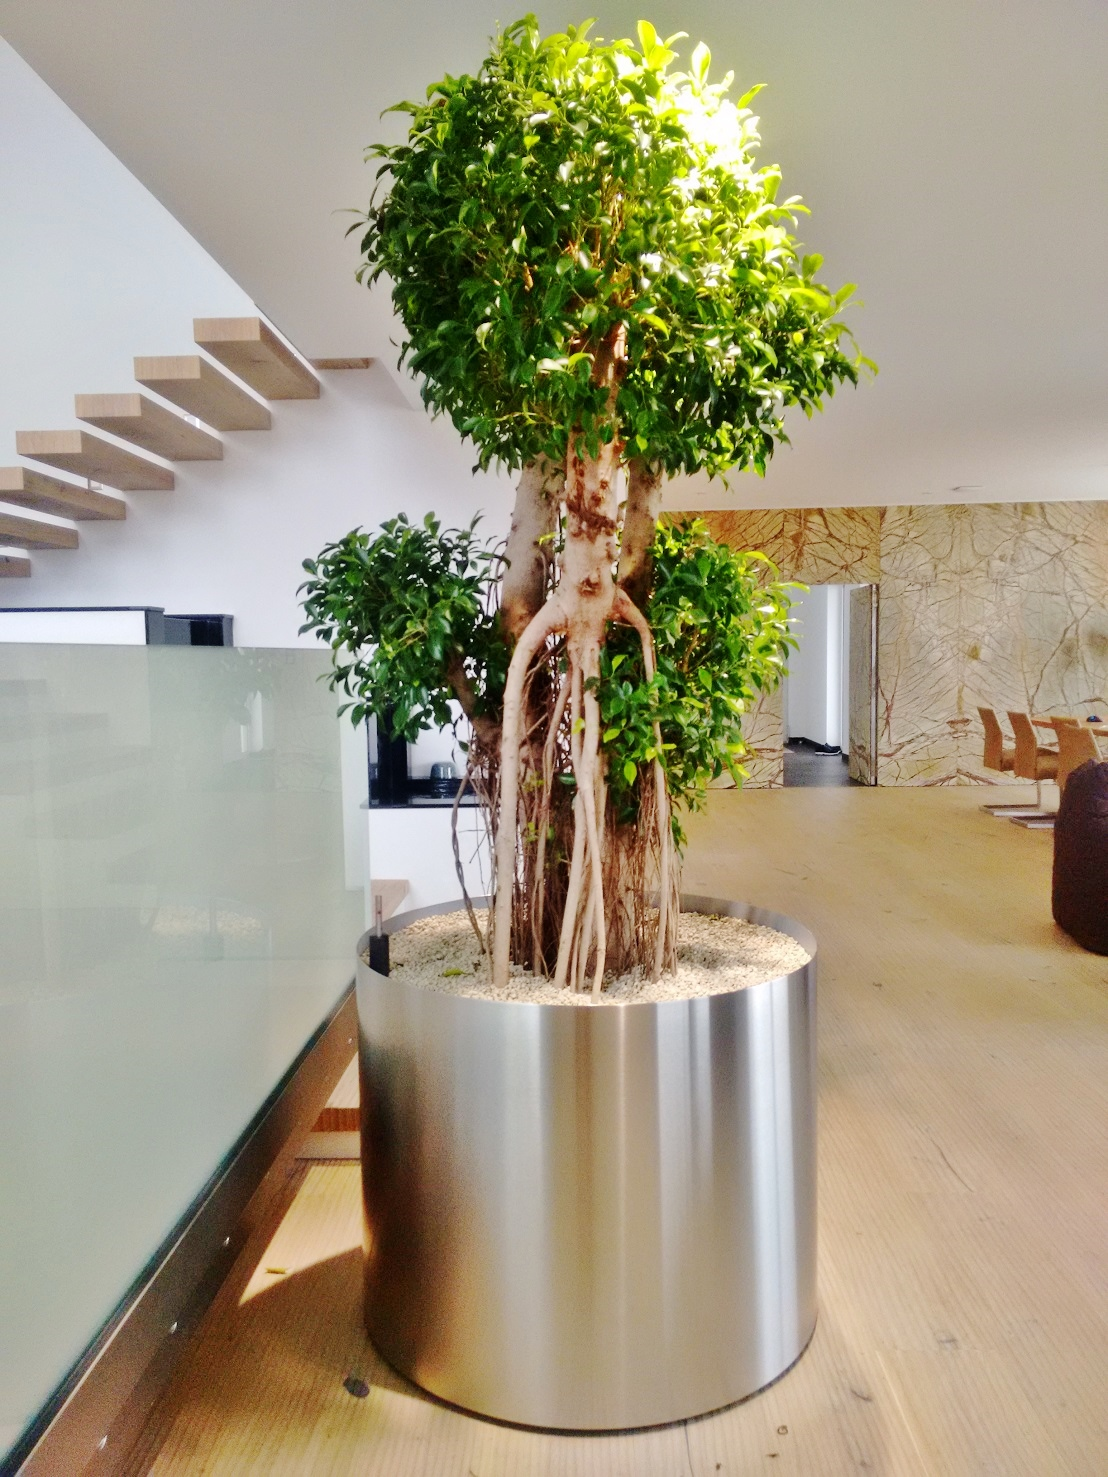 Stainless steel planter in all sizes, shapes and colors - here planted with Ficus nitida bonsai-like